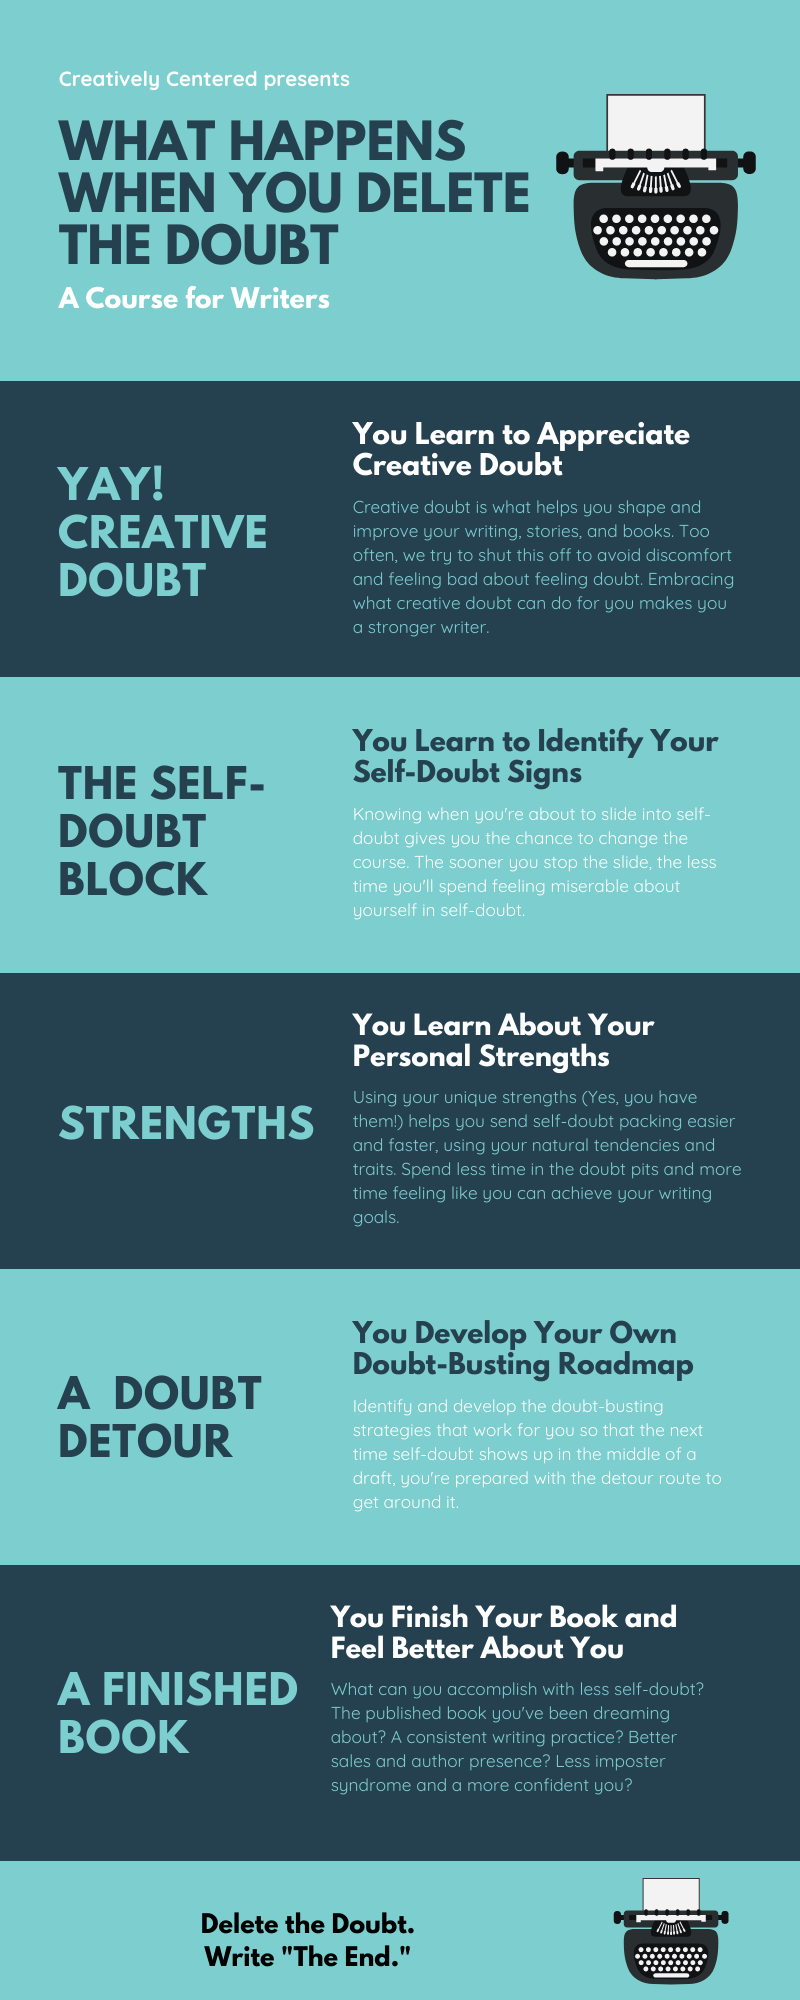 Infographic on what happens when you delete the doubt: Yay! Creative Doubt, The Self Doubt Block, Strengths, A Doubt Detour, and a Finished Book